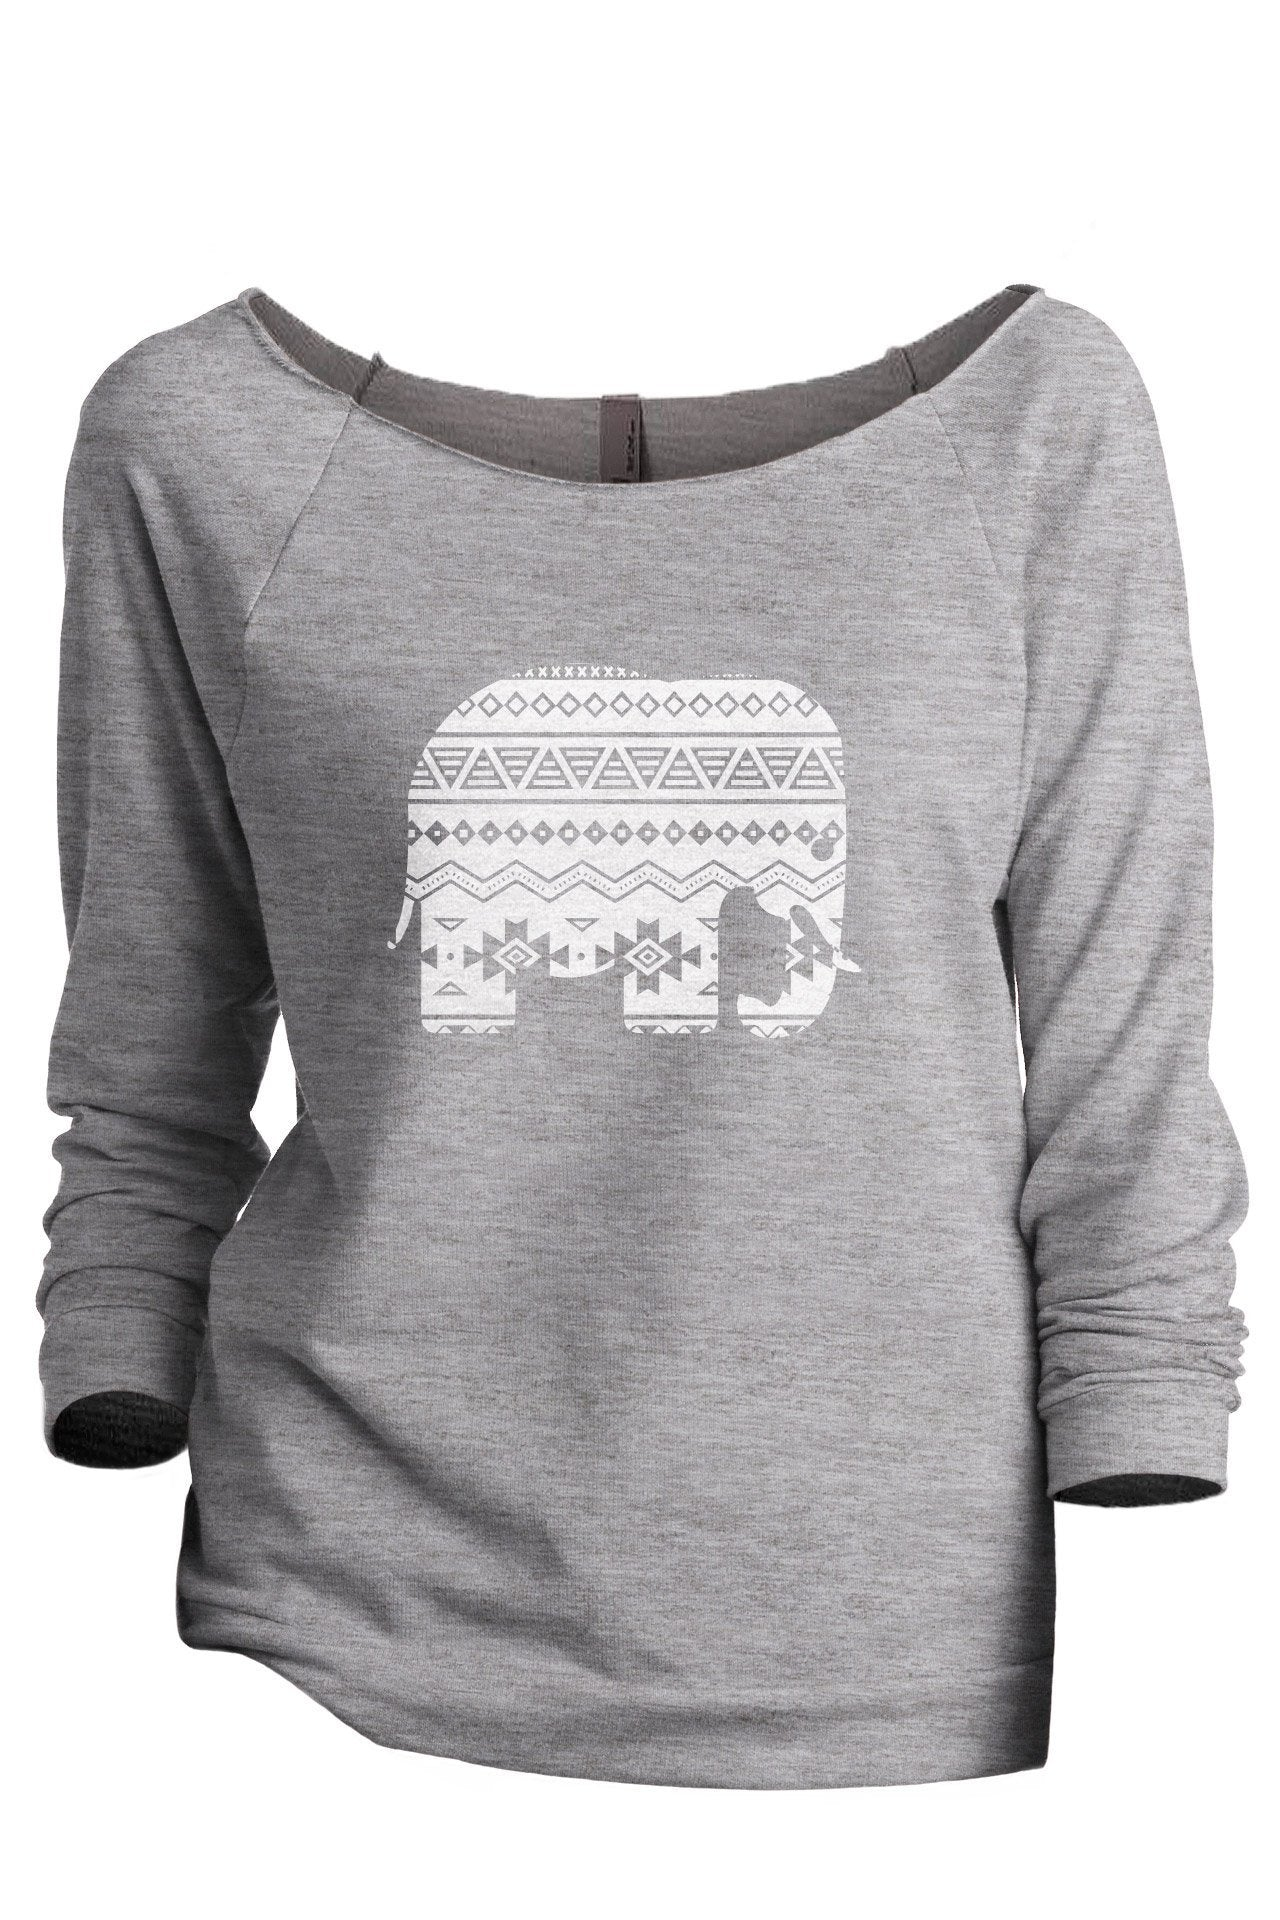 Aztec Elephant Women's Graphic Printed Lightweight Slouchy 3/4 Sleeves Sweatshirt Sport Grey